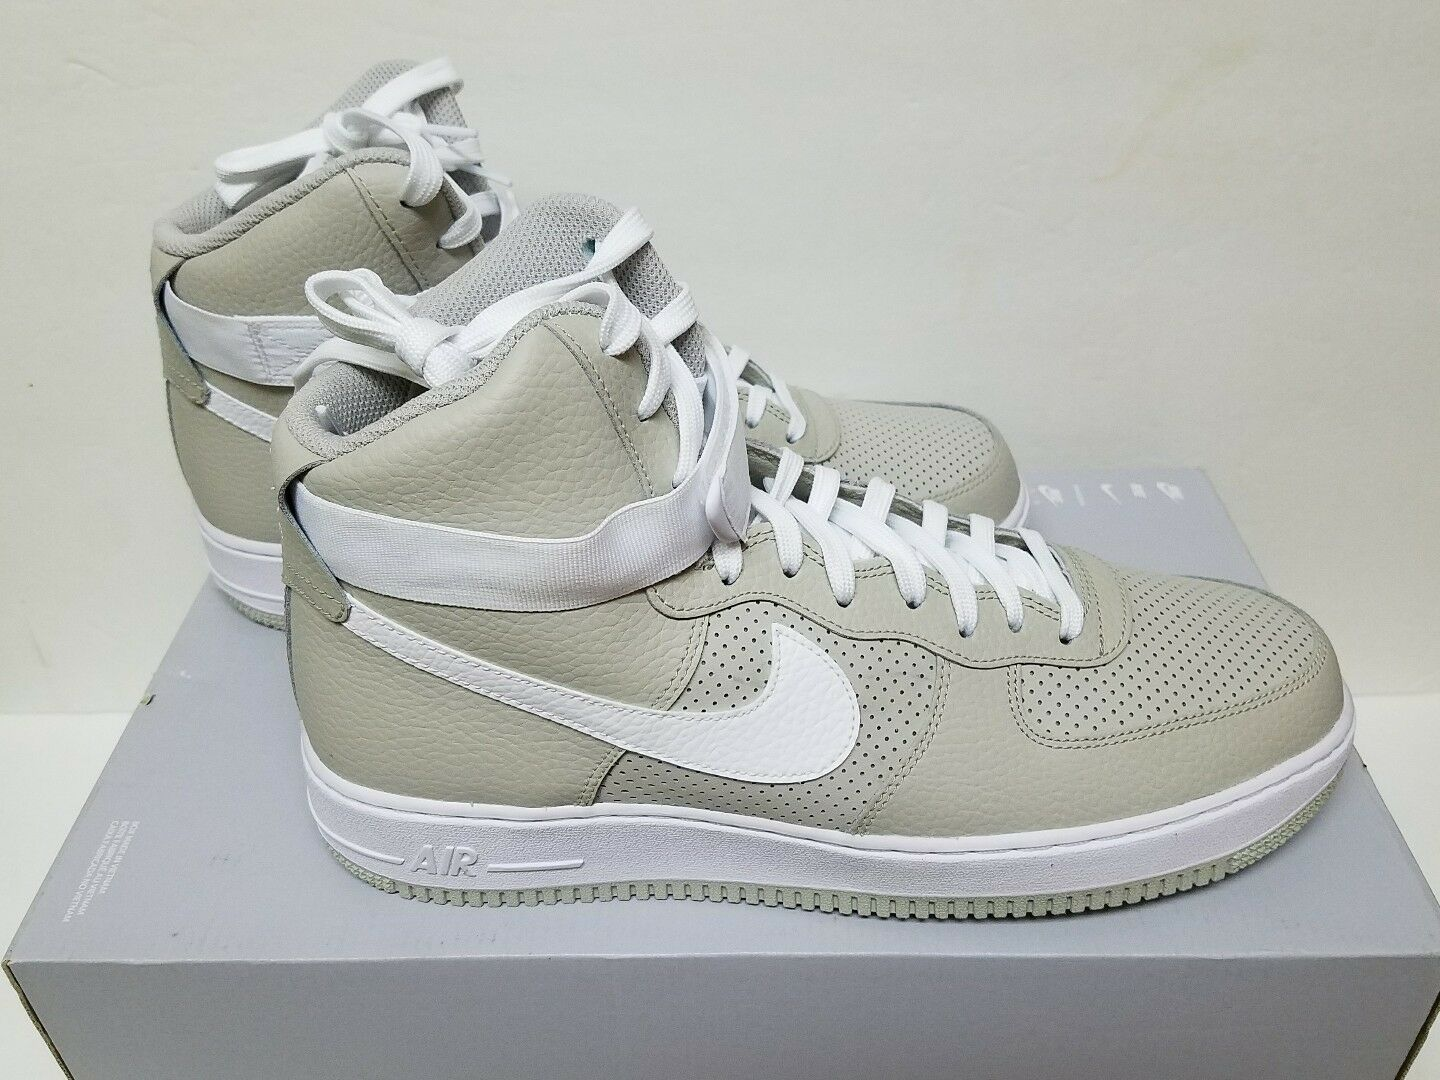 Nike Air Force 1 One '07 High Size 11 & 12-  315121 039 Men's Pale Grey